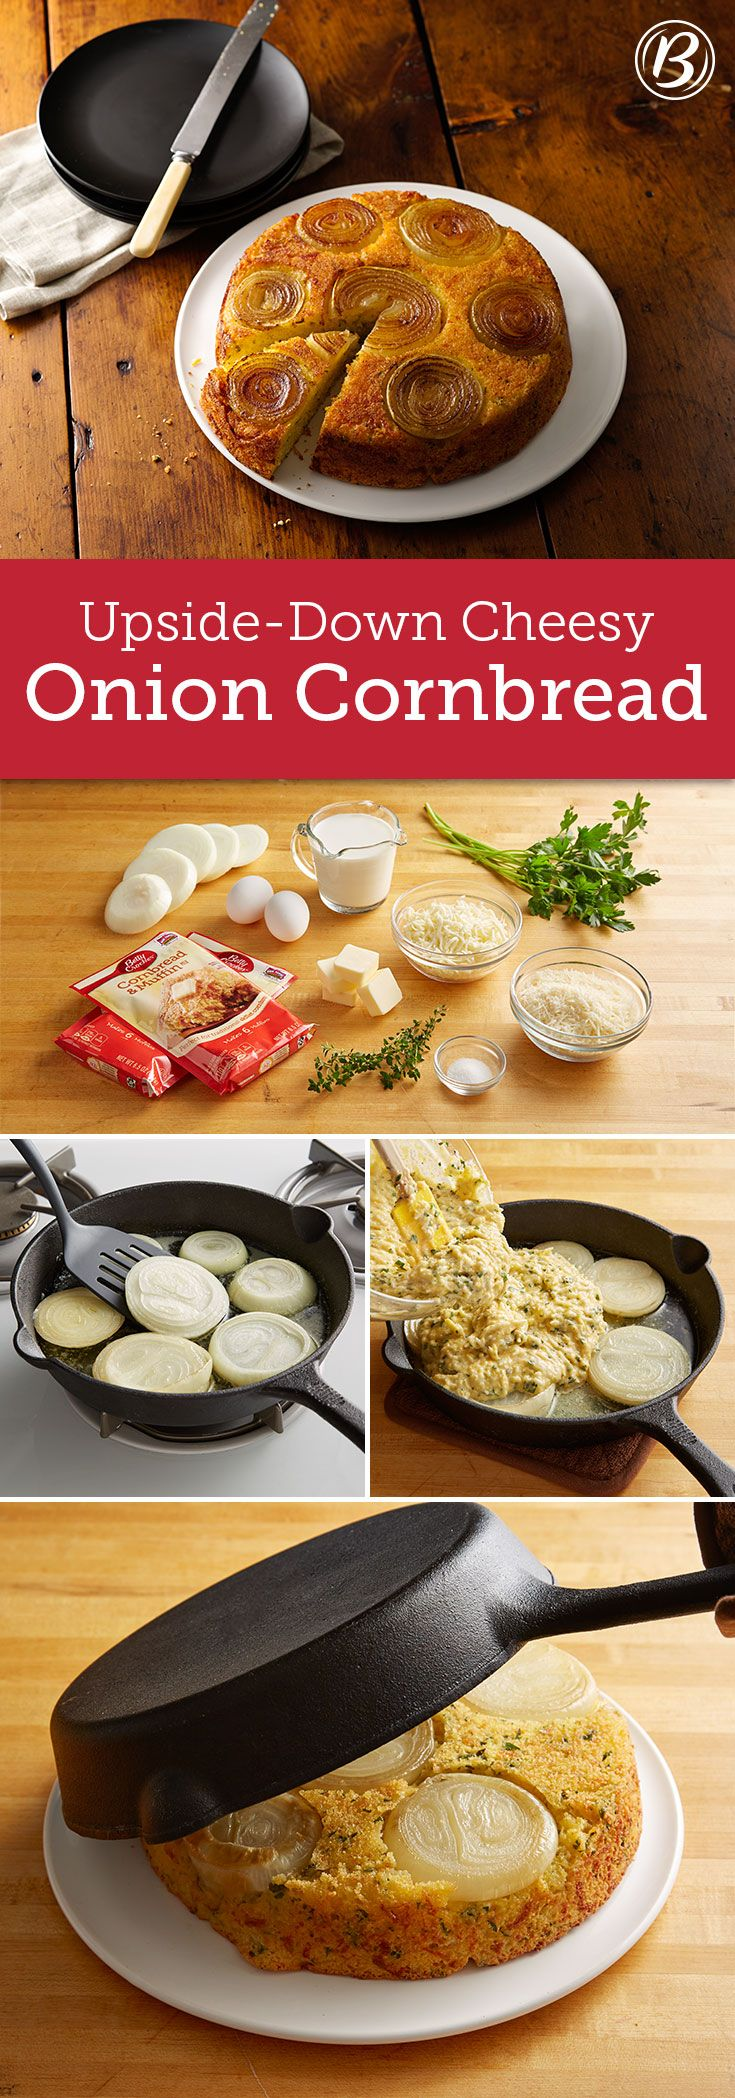 Want a beautiful and delicious bread to go along with holiday meals or even just weeknight soups? This cheesy, versatile sweet onion cornbread has got you covered!